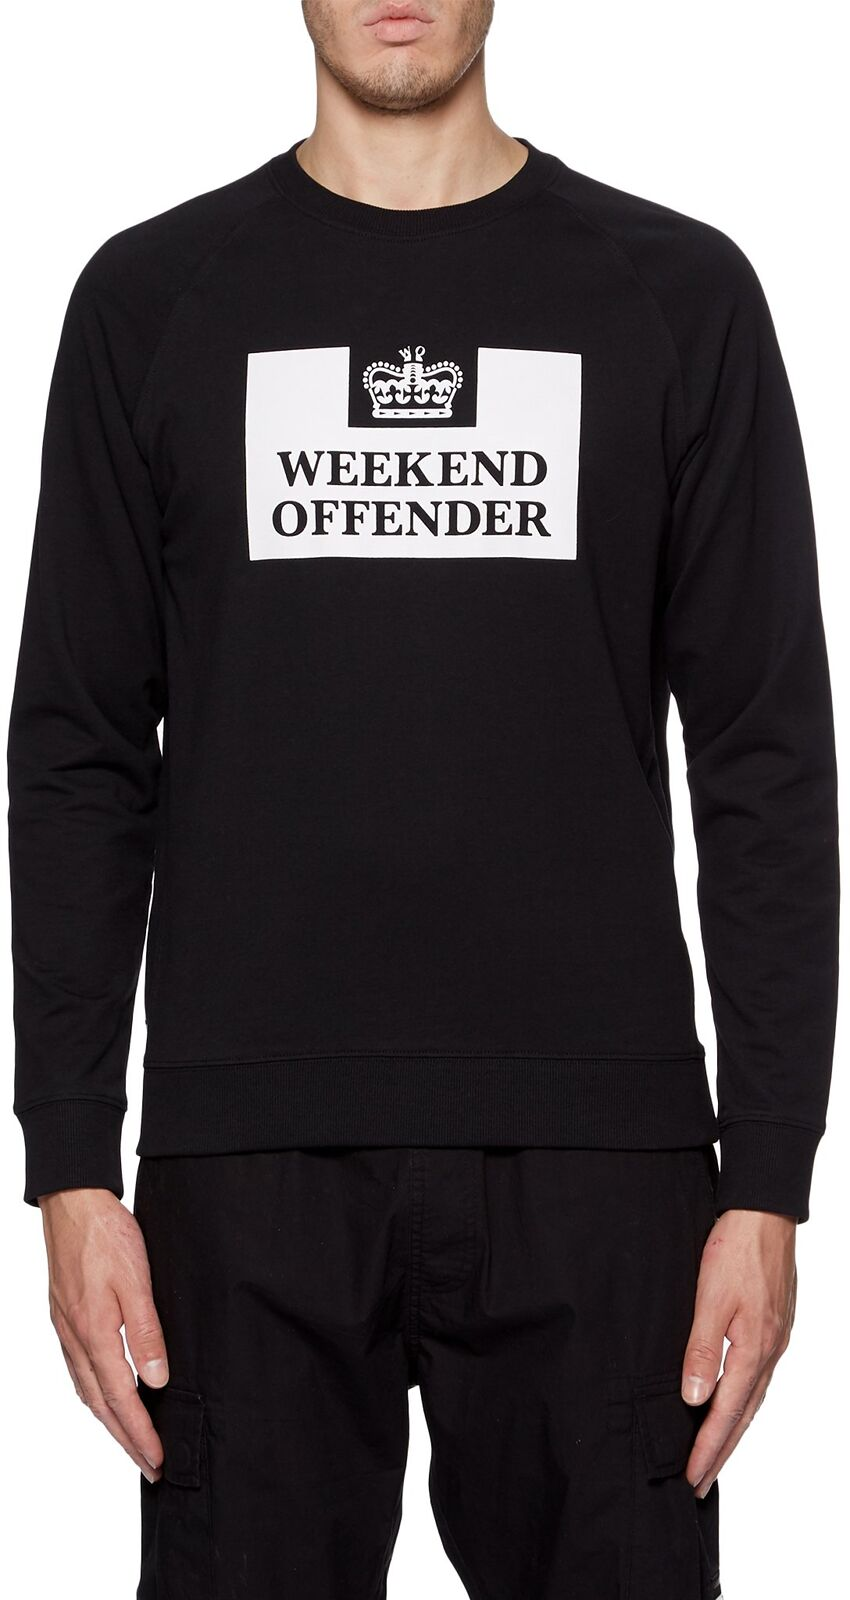 Weekend Offender Penitentiary Sweatshirt Black